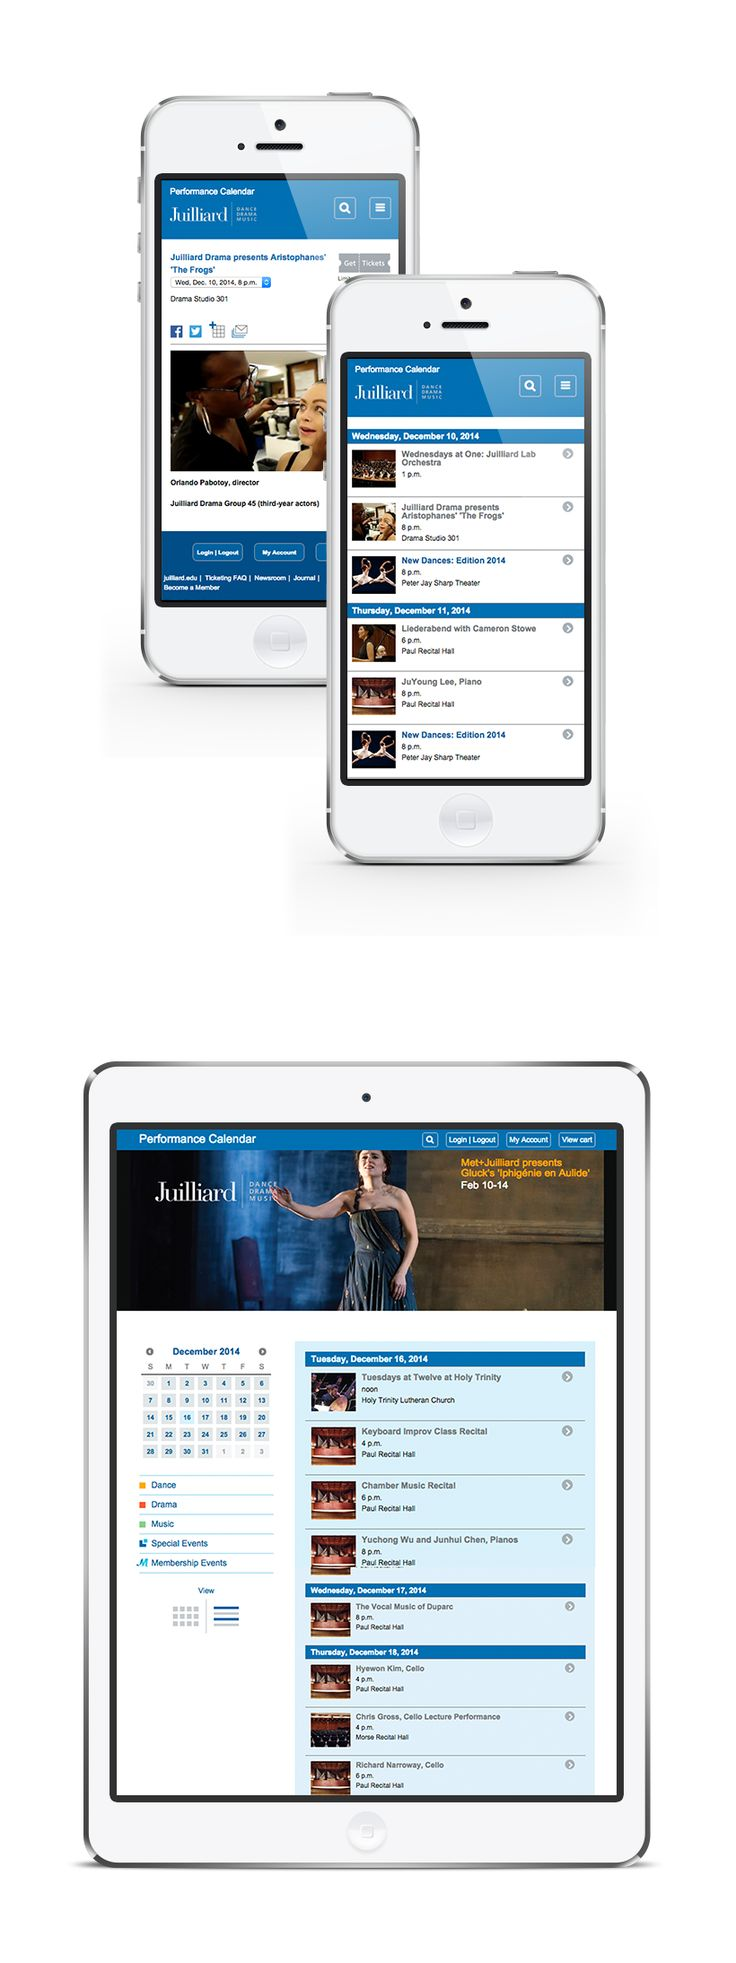 The Juilliard School is a New York based performing arts conservatory established in 1905.  Our role involved back-end (Django) implementation as well as front-end coding work based on provided design concept.  Visit site: www.events.juilliard.edu